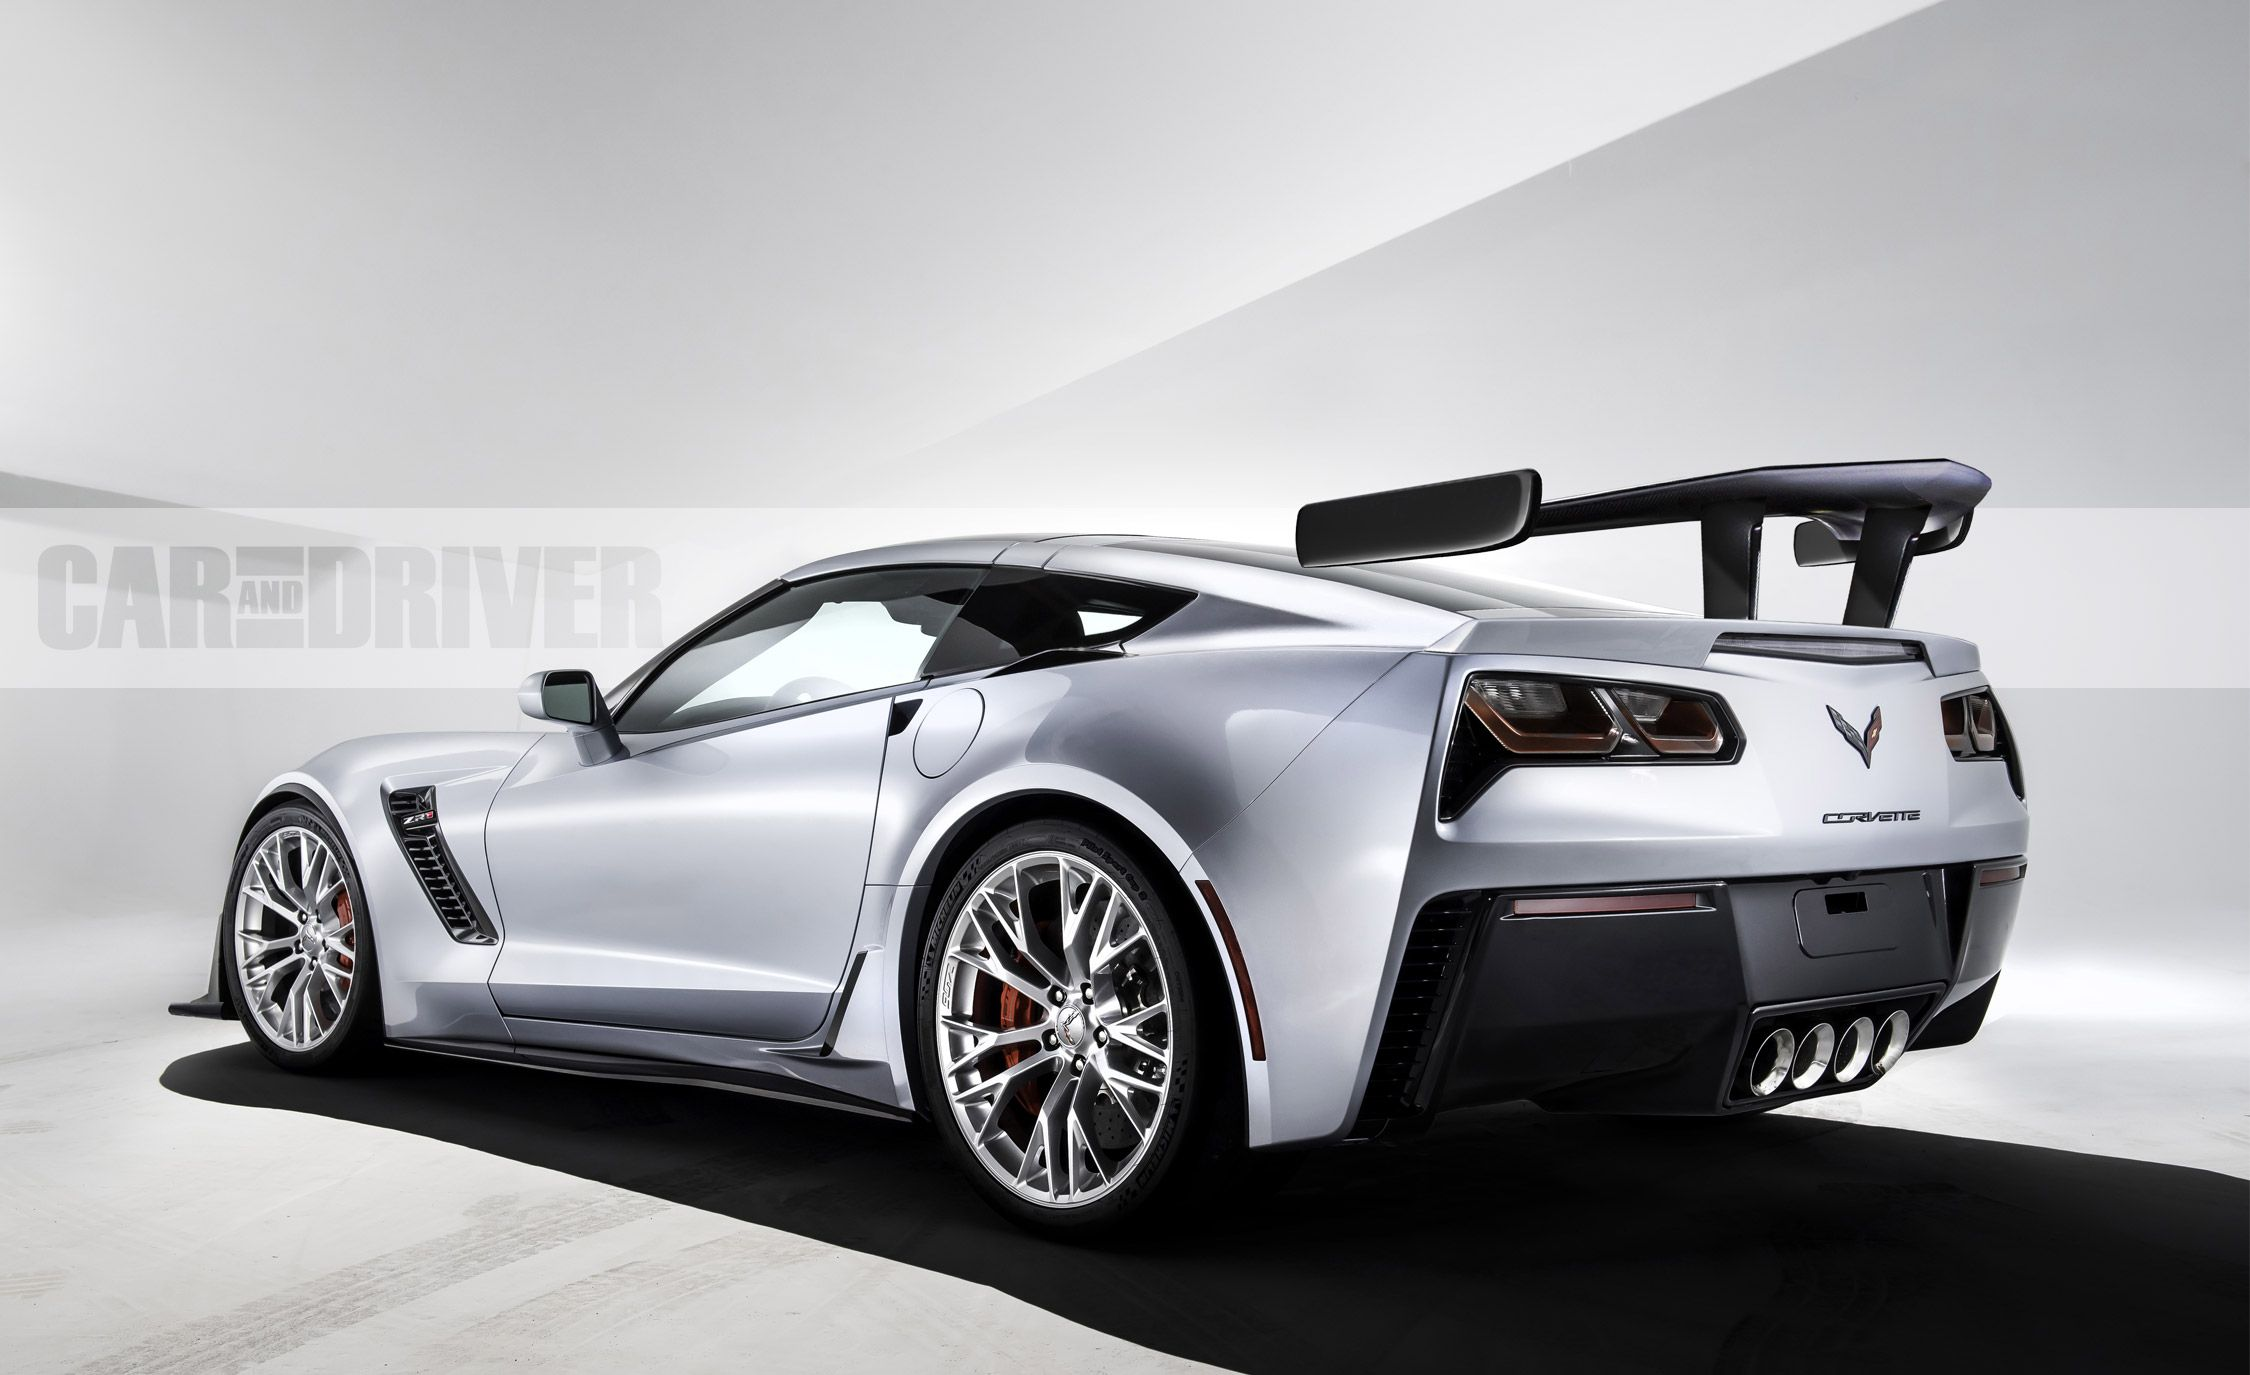 2019 Chevrolet Corvette Zr1 Sending Off C7 With One Hell Of A Bang